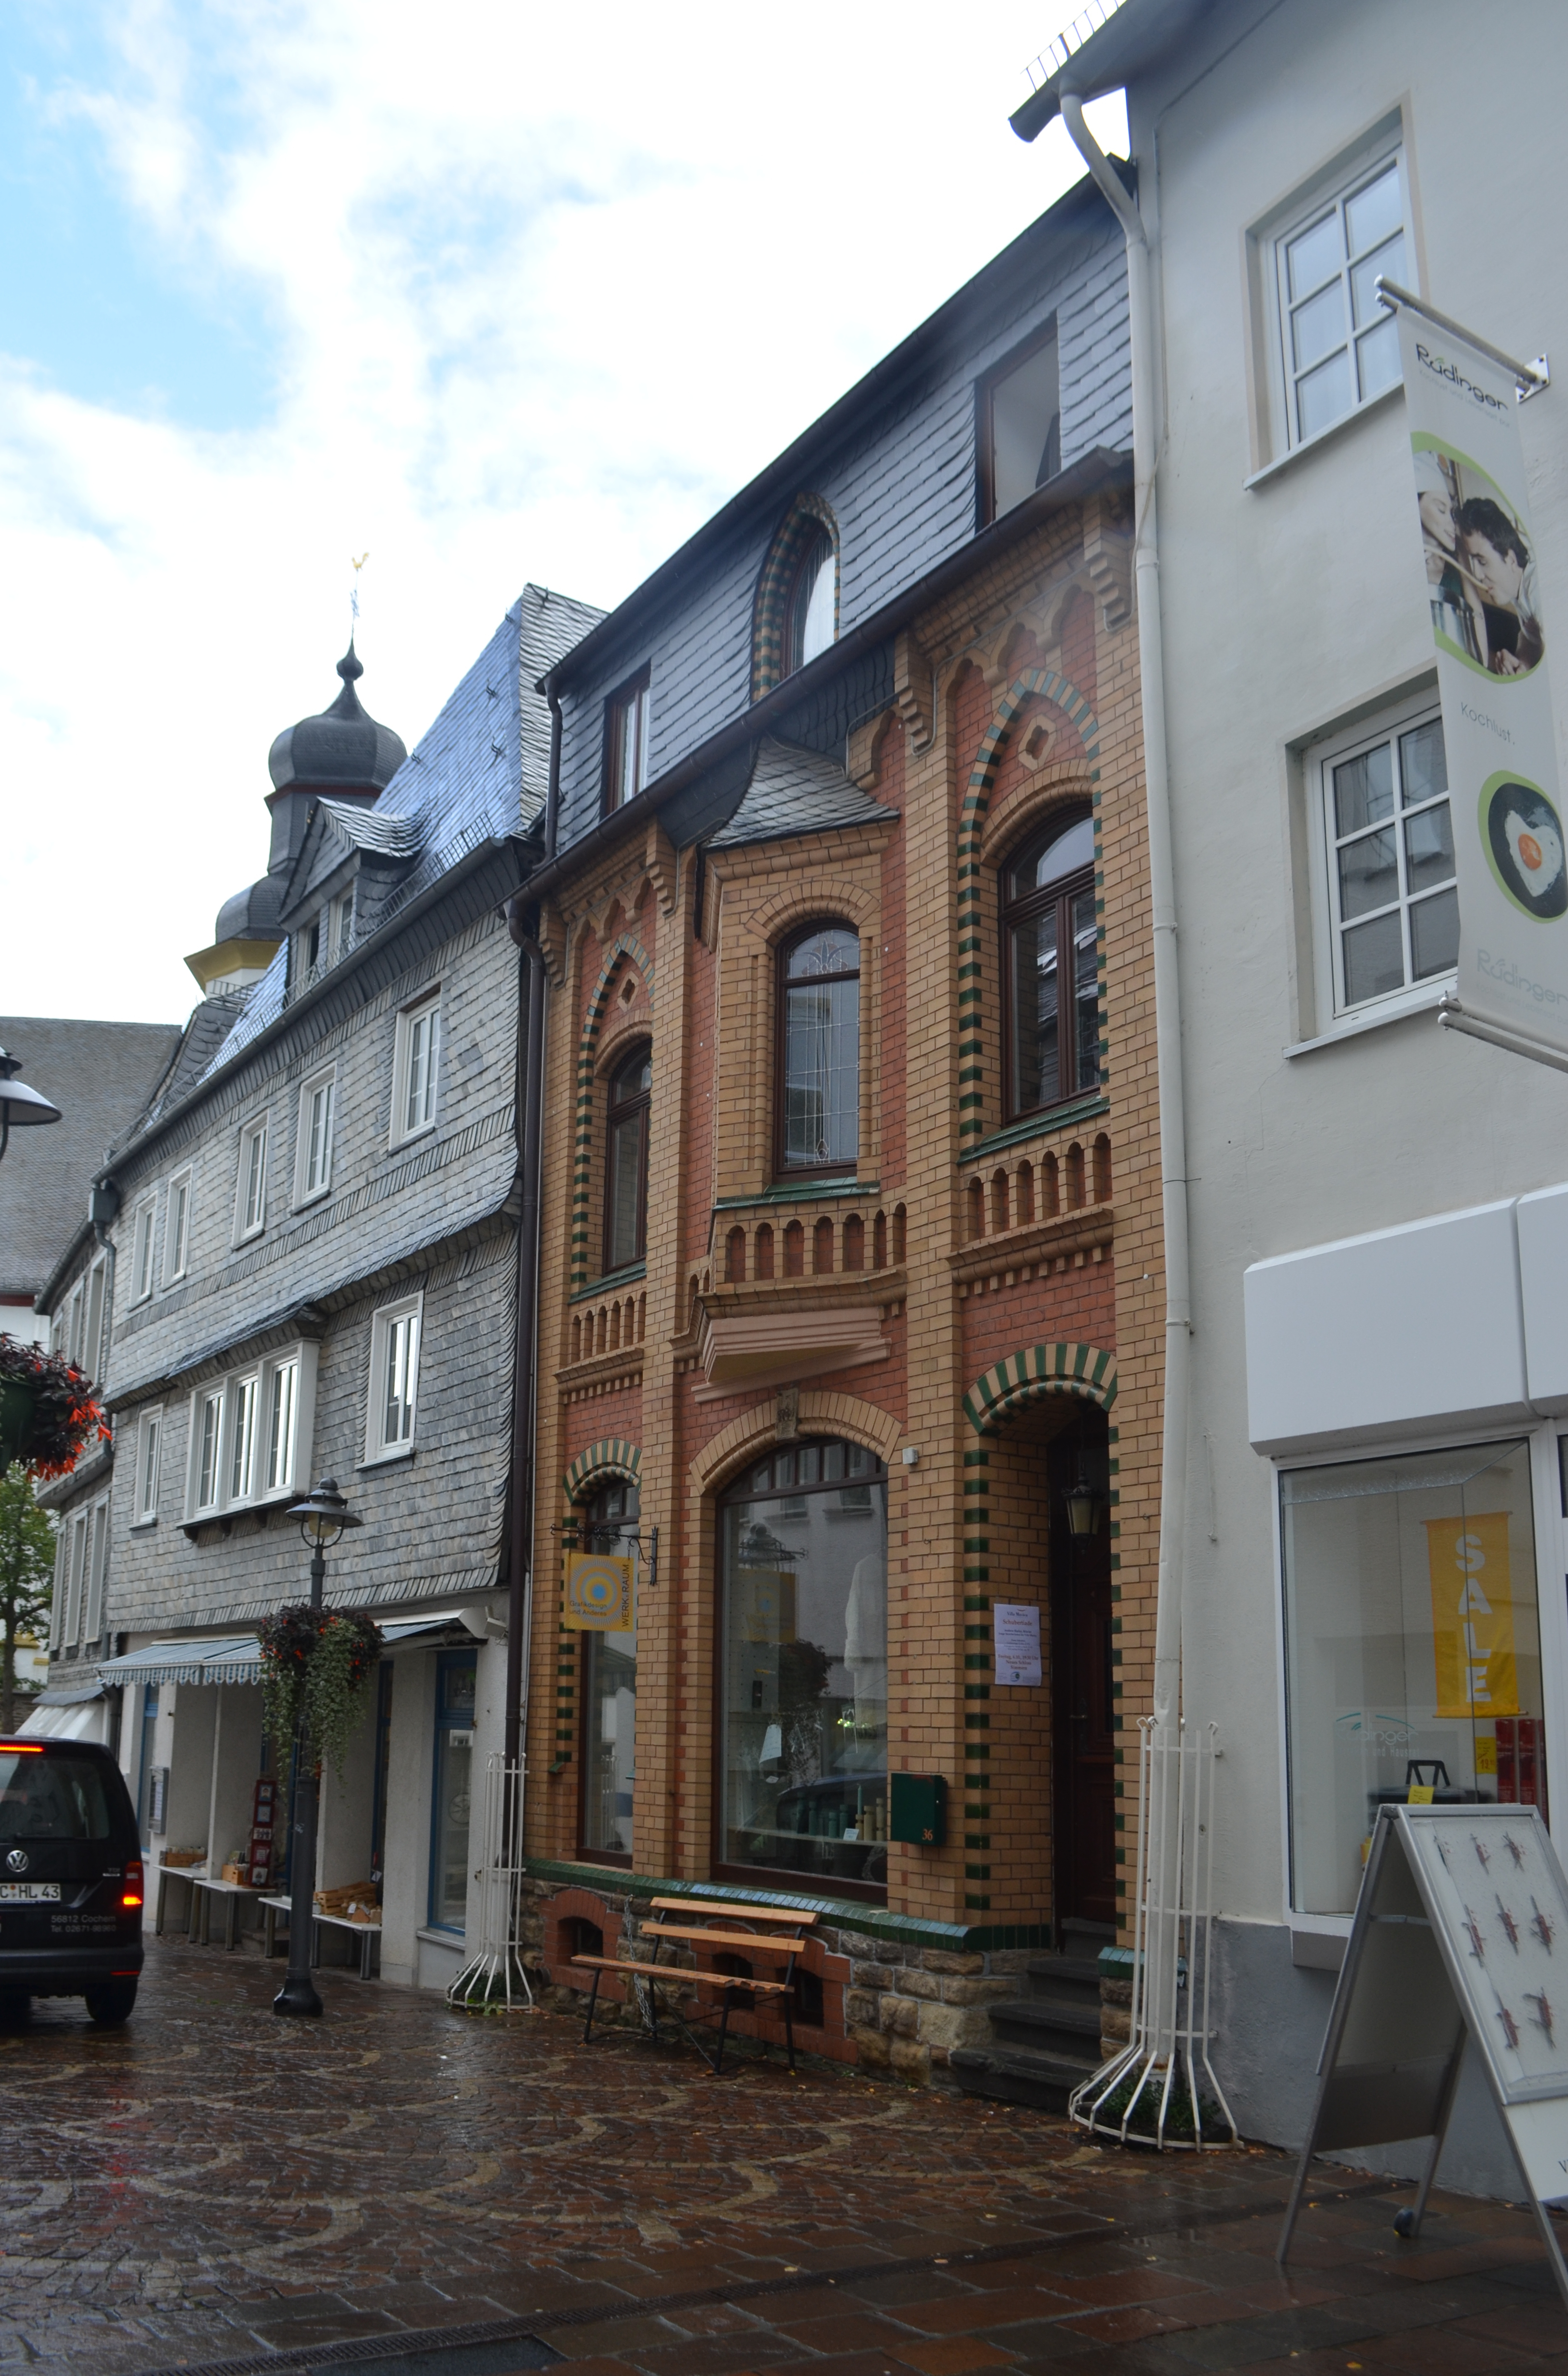 Single simmern